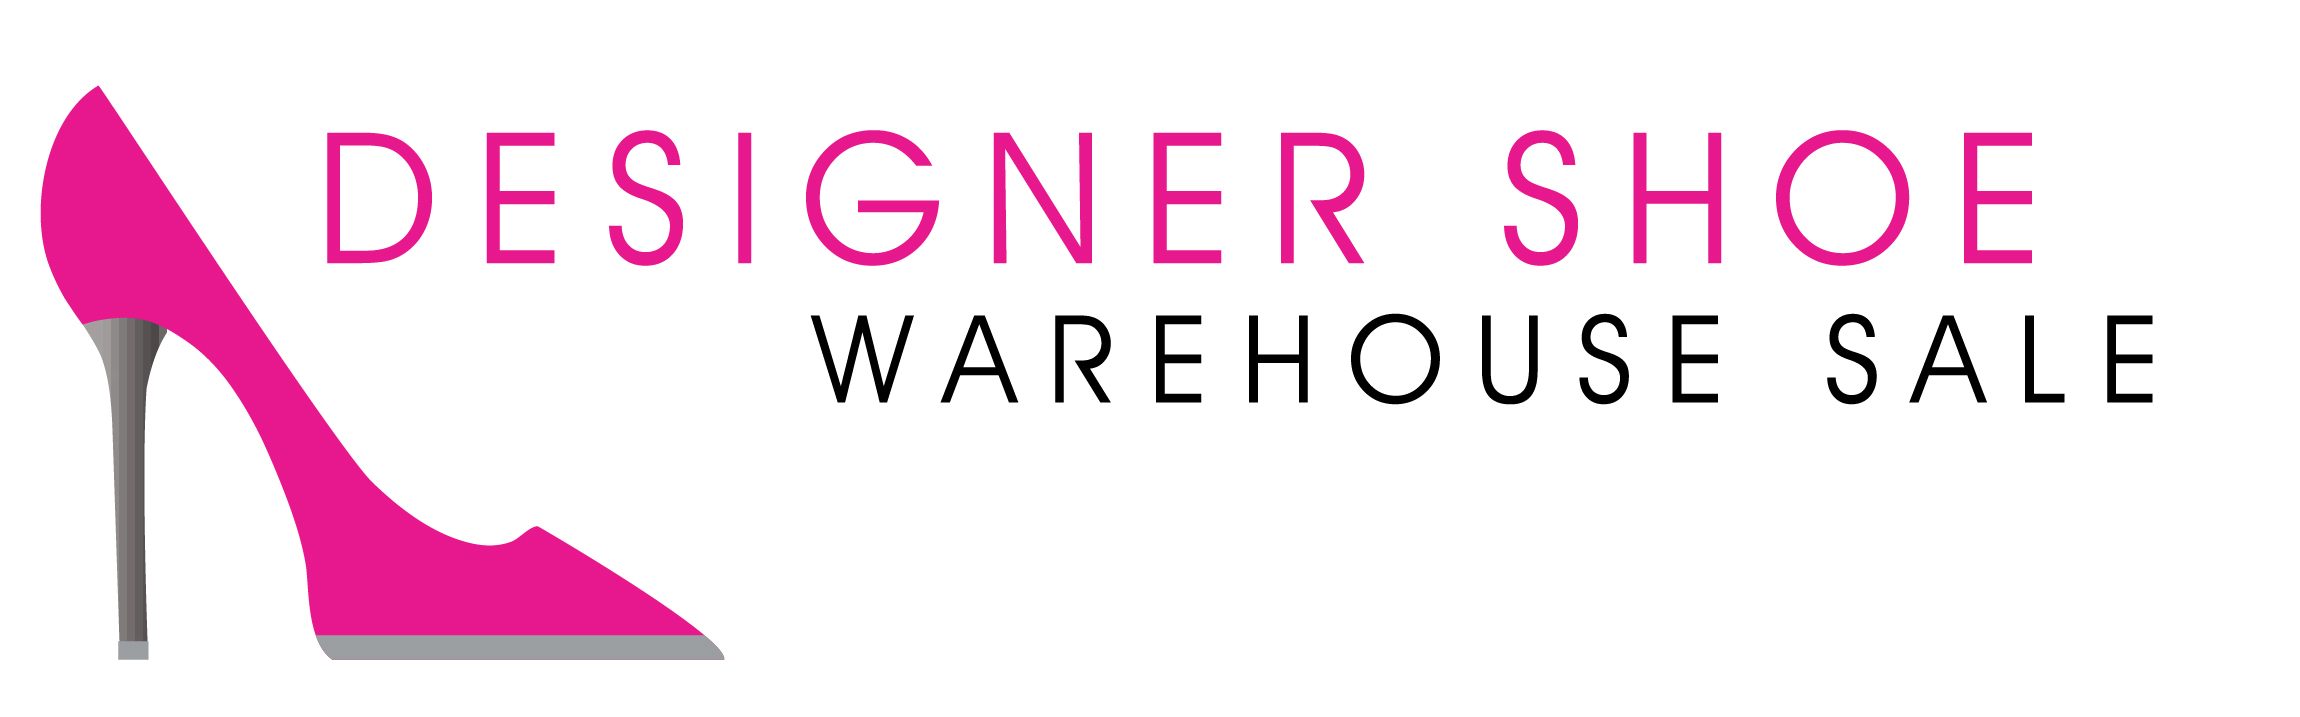 Designer Shoe Warehouse Sale